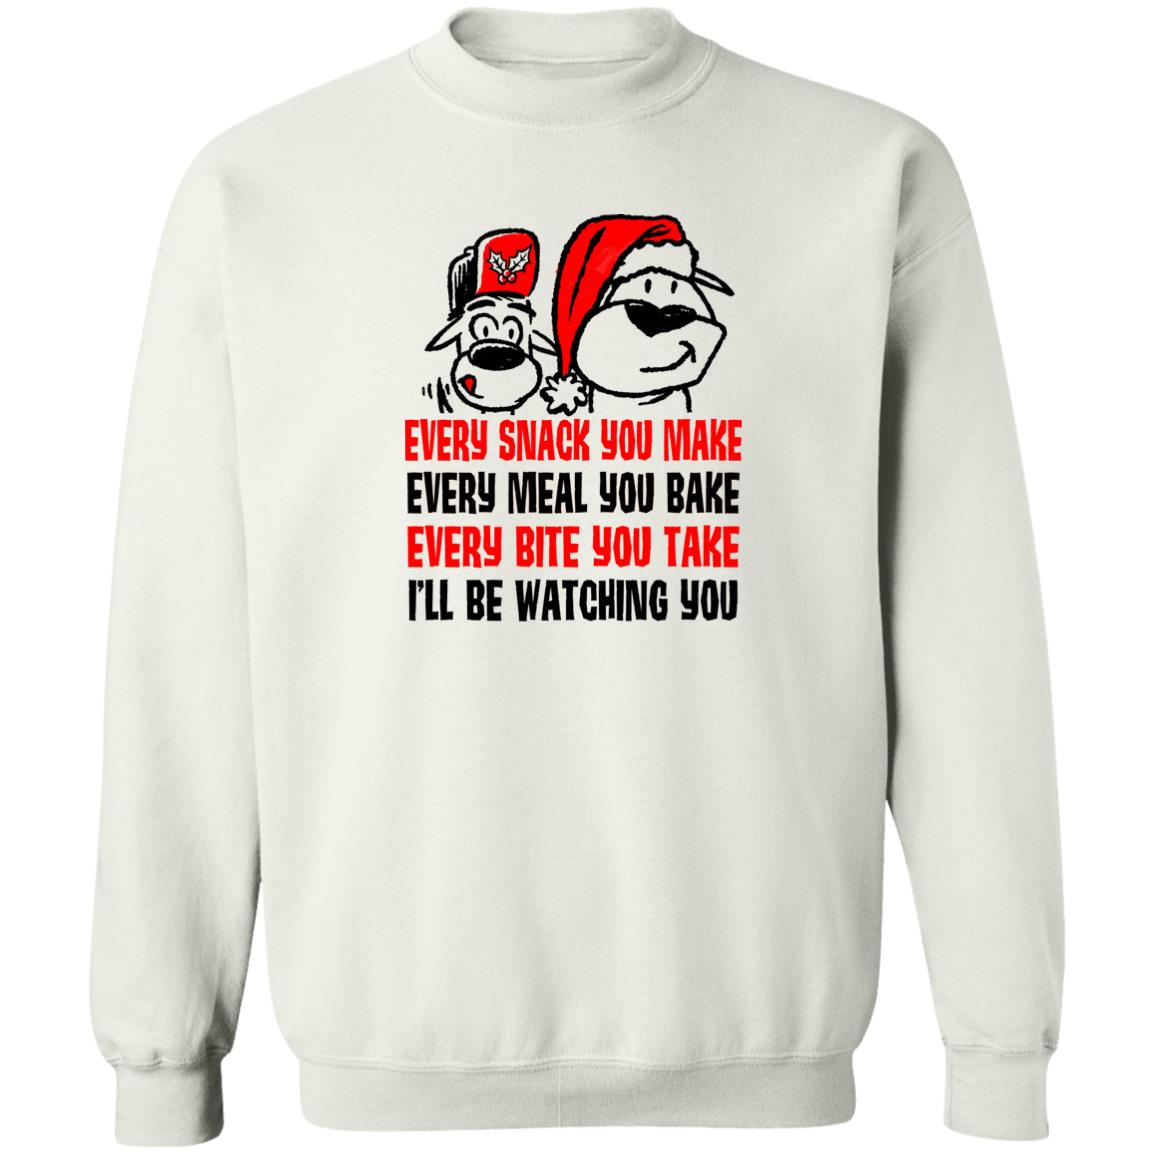 Every Snack You Make Christmas-  White Sweatshirt 🐾  Deal Up To 25% Off!